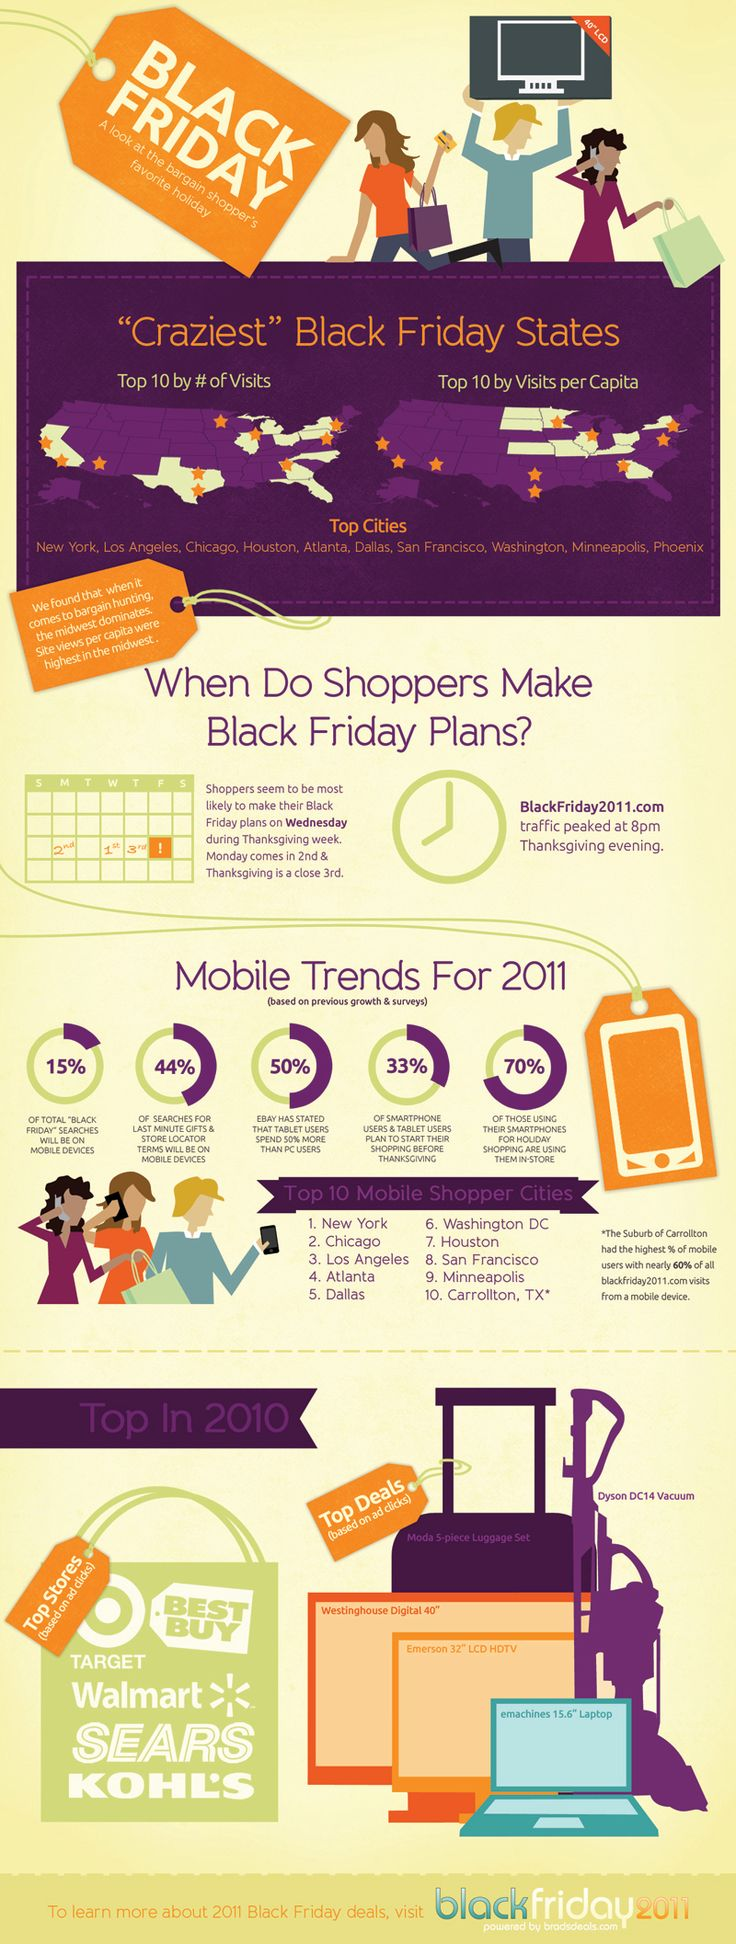 Black Friday, Crazy for Black Friday Deals: A Look at the Bargain Shopper's Favorite Holiday #ecommerce #blackfriday